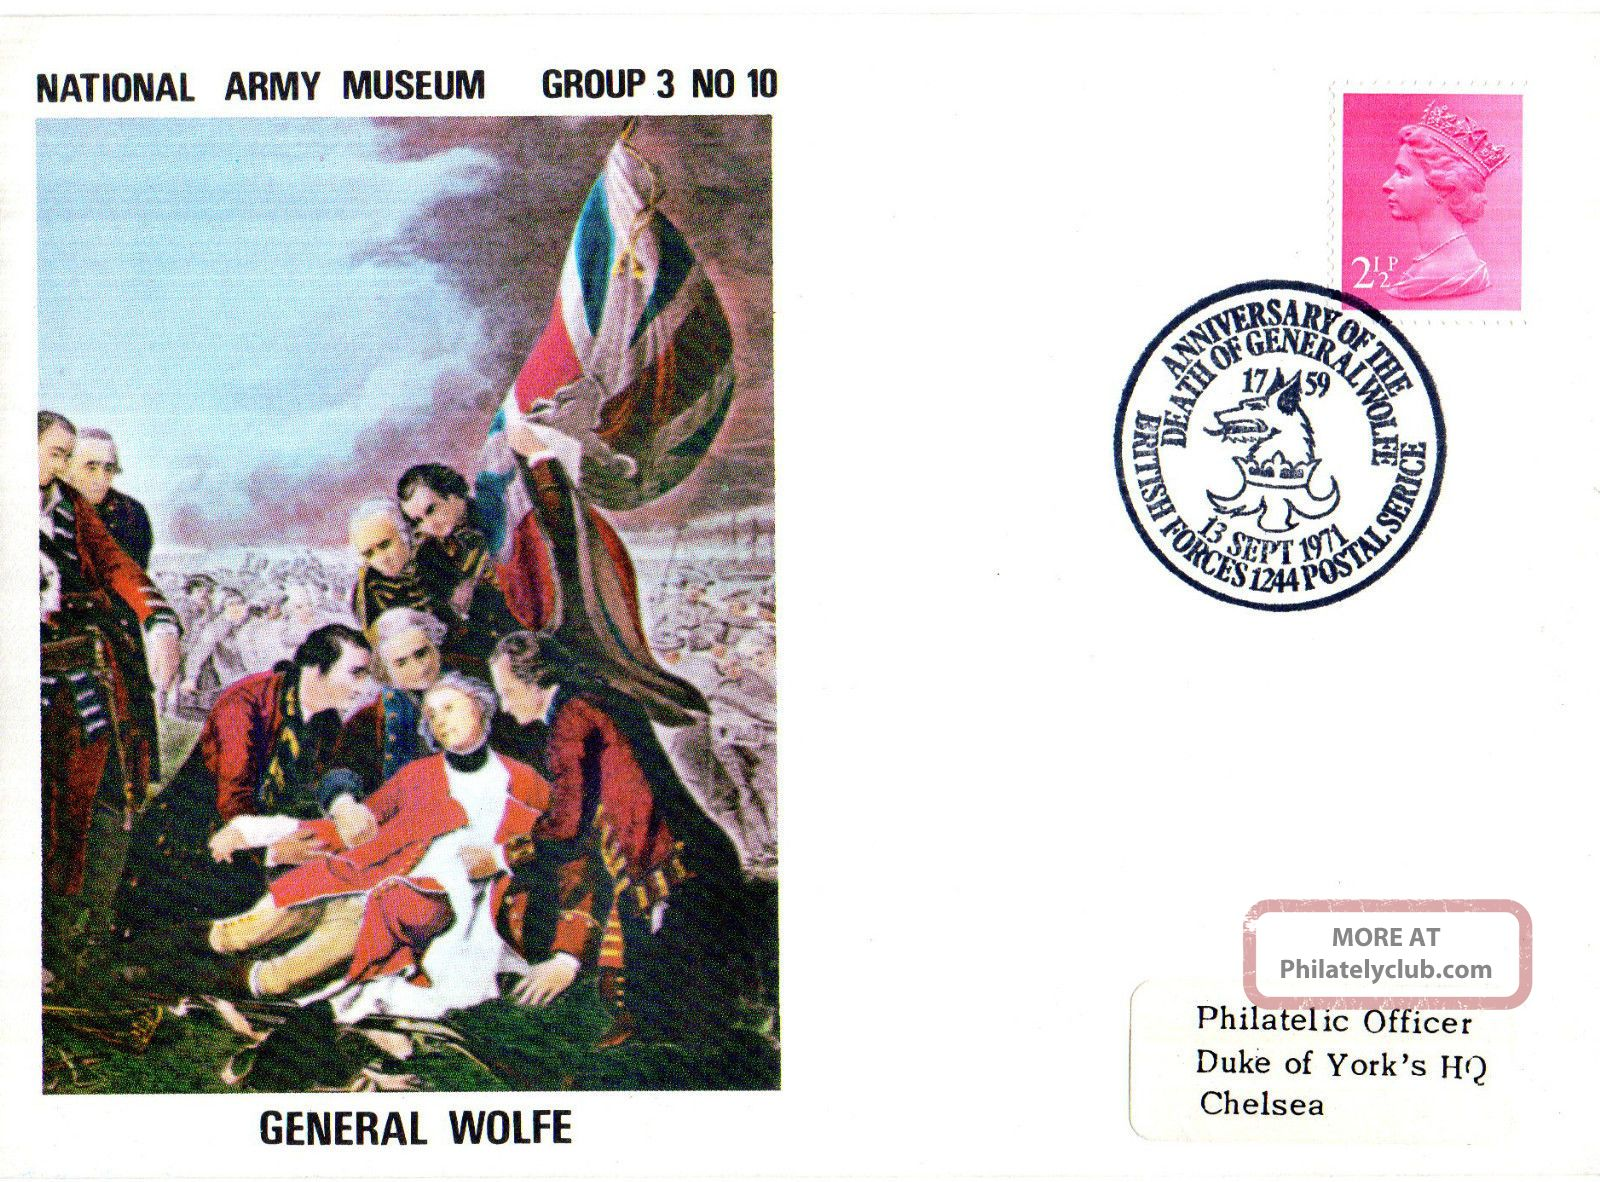 1971 General Wolfe 3/10 Army Museum Commemorative Cover Shs Topical Stamps photo